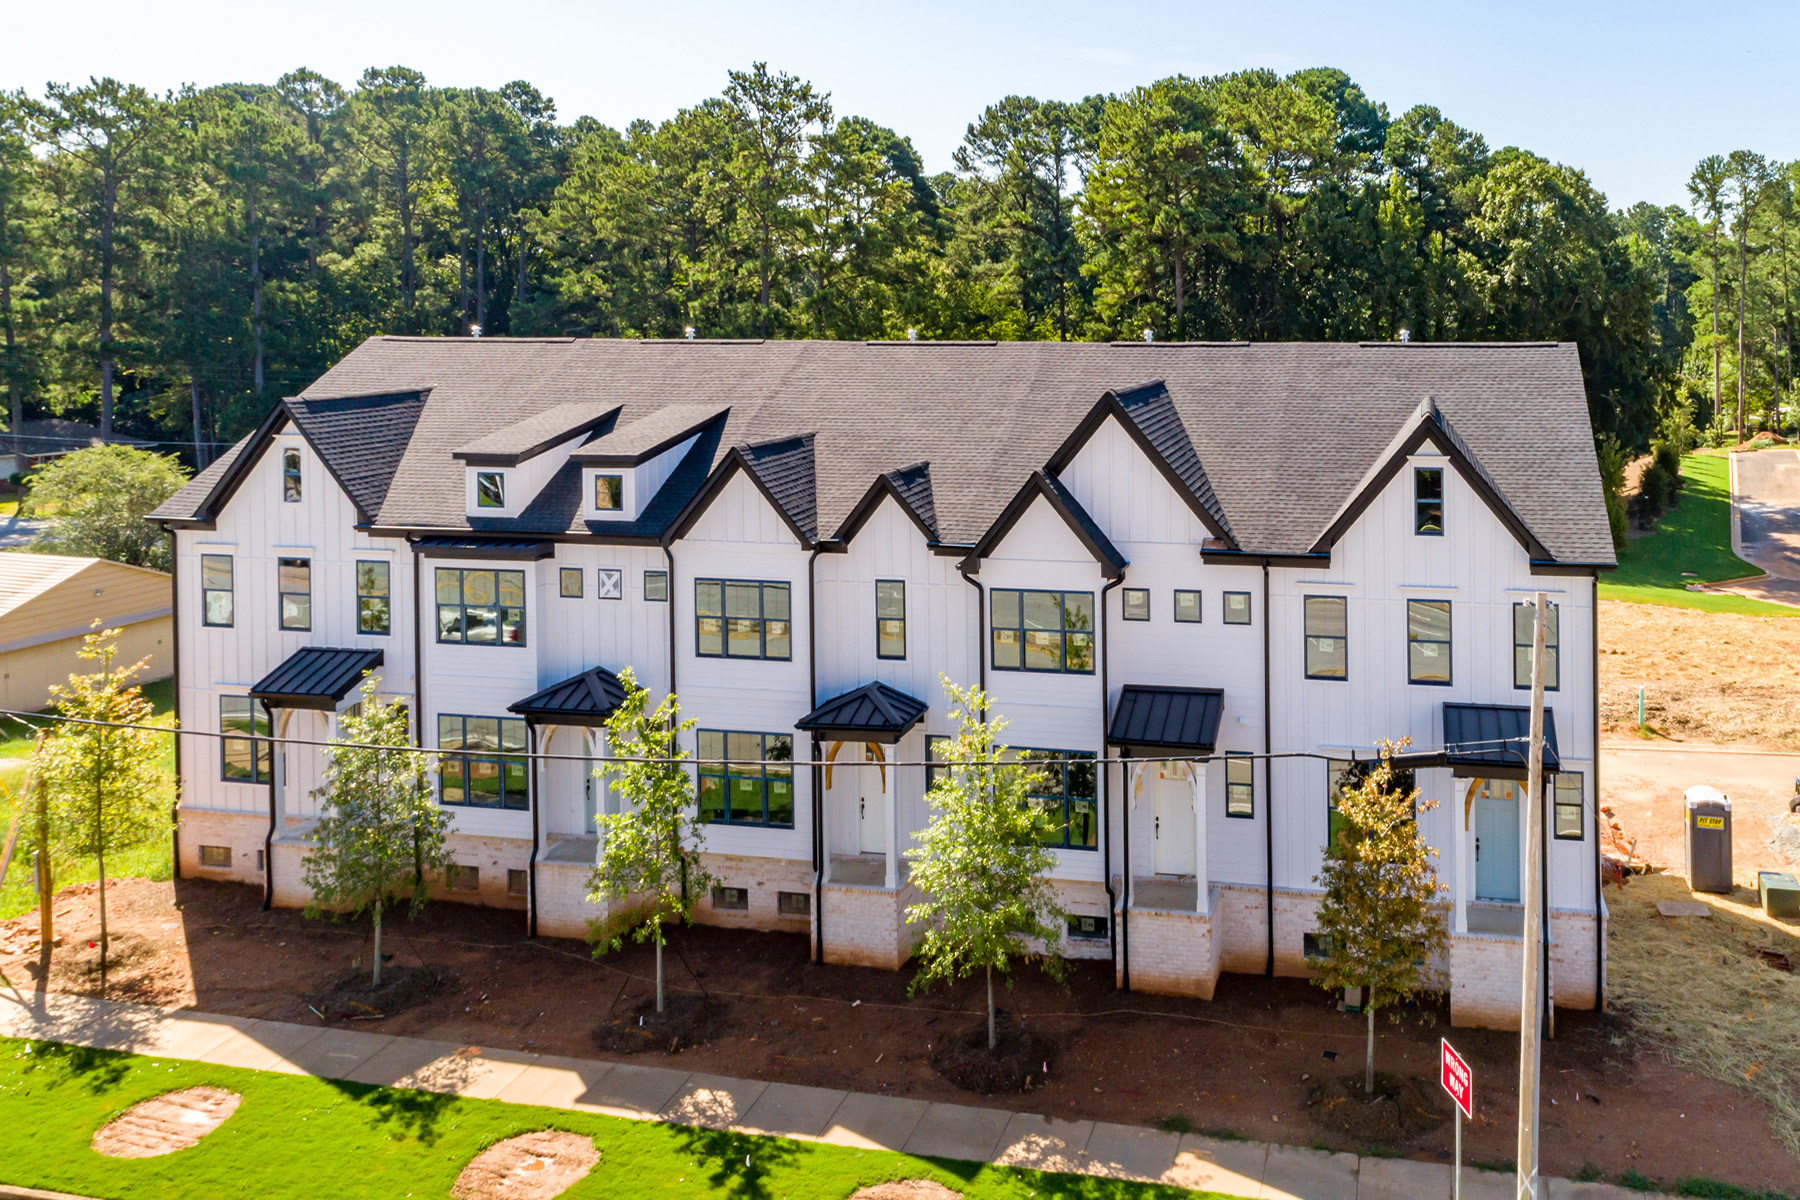 townhouses por un Venta en Beautiful New Townhome Located in Desirable Decatur 2729 Lawrenceville Highway No. 8, Decatur, Georgia 30033 Estados Unidos